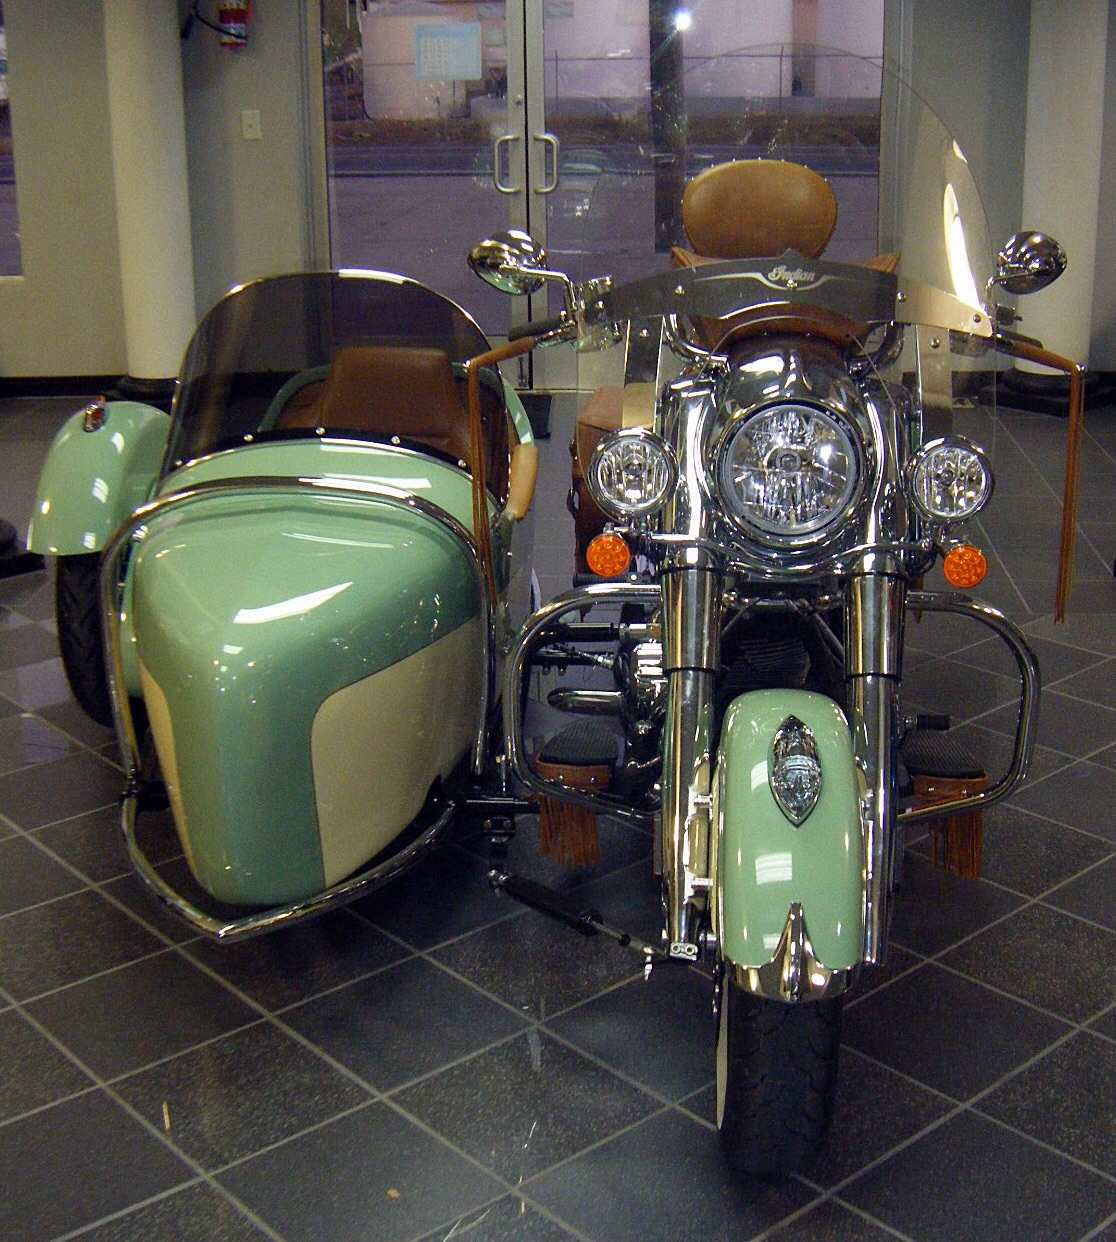 Chief Vintage with Indian Heritage Sidecar (Hannigan